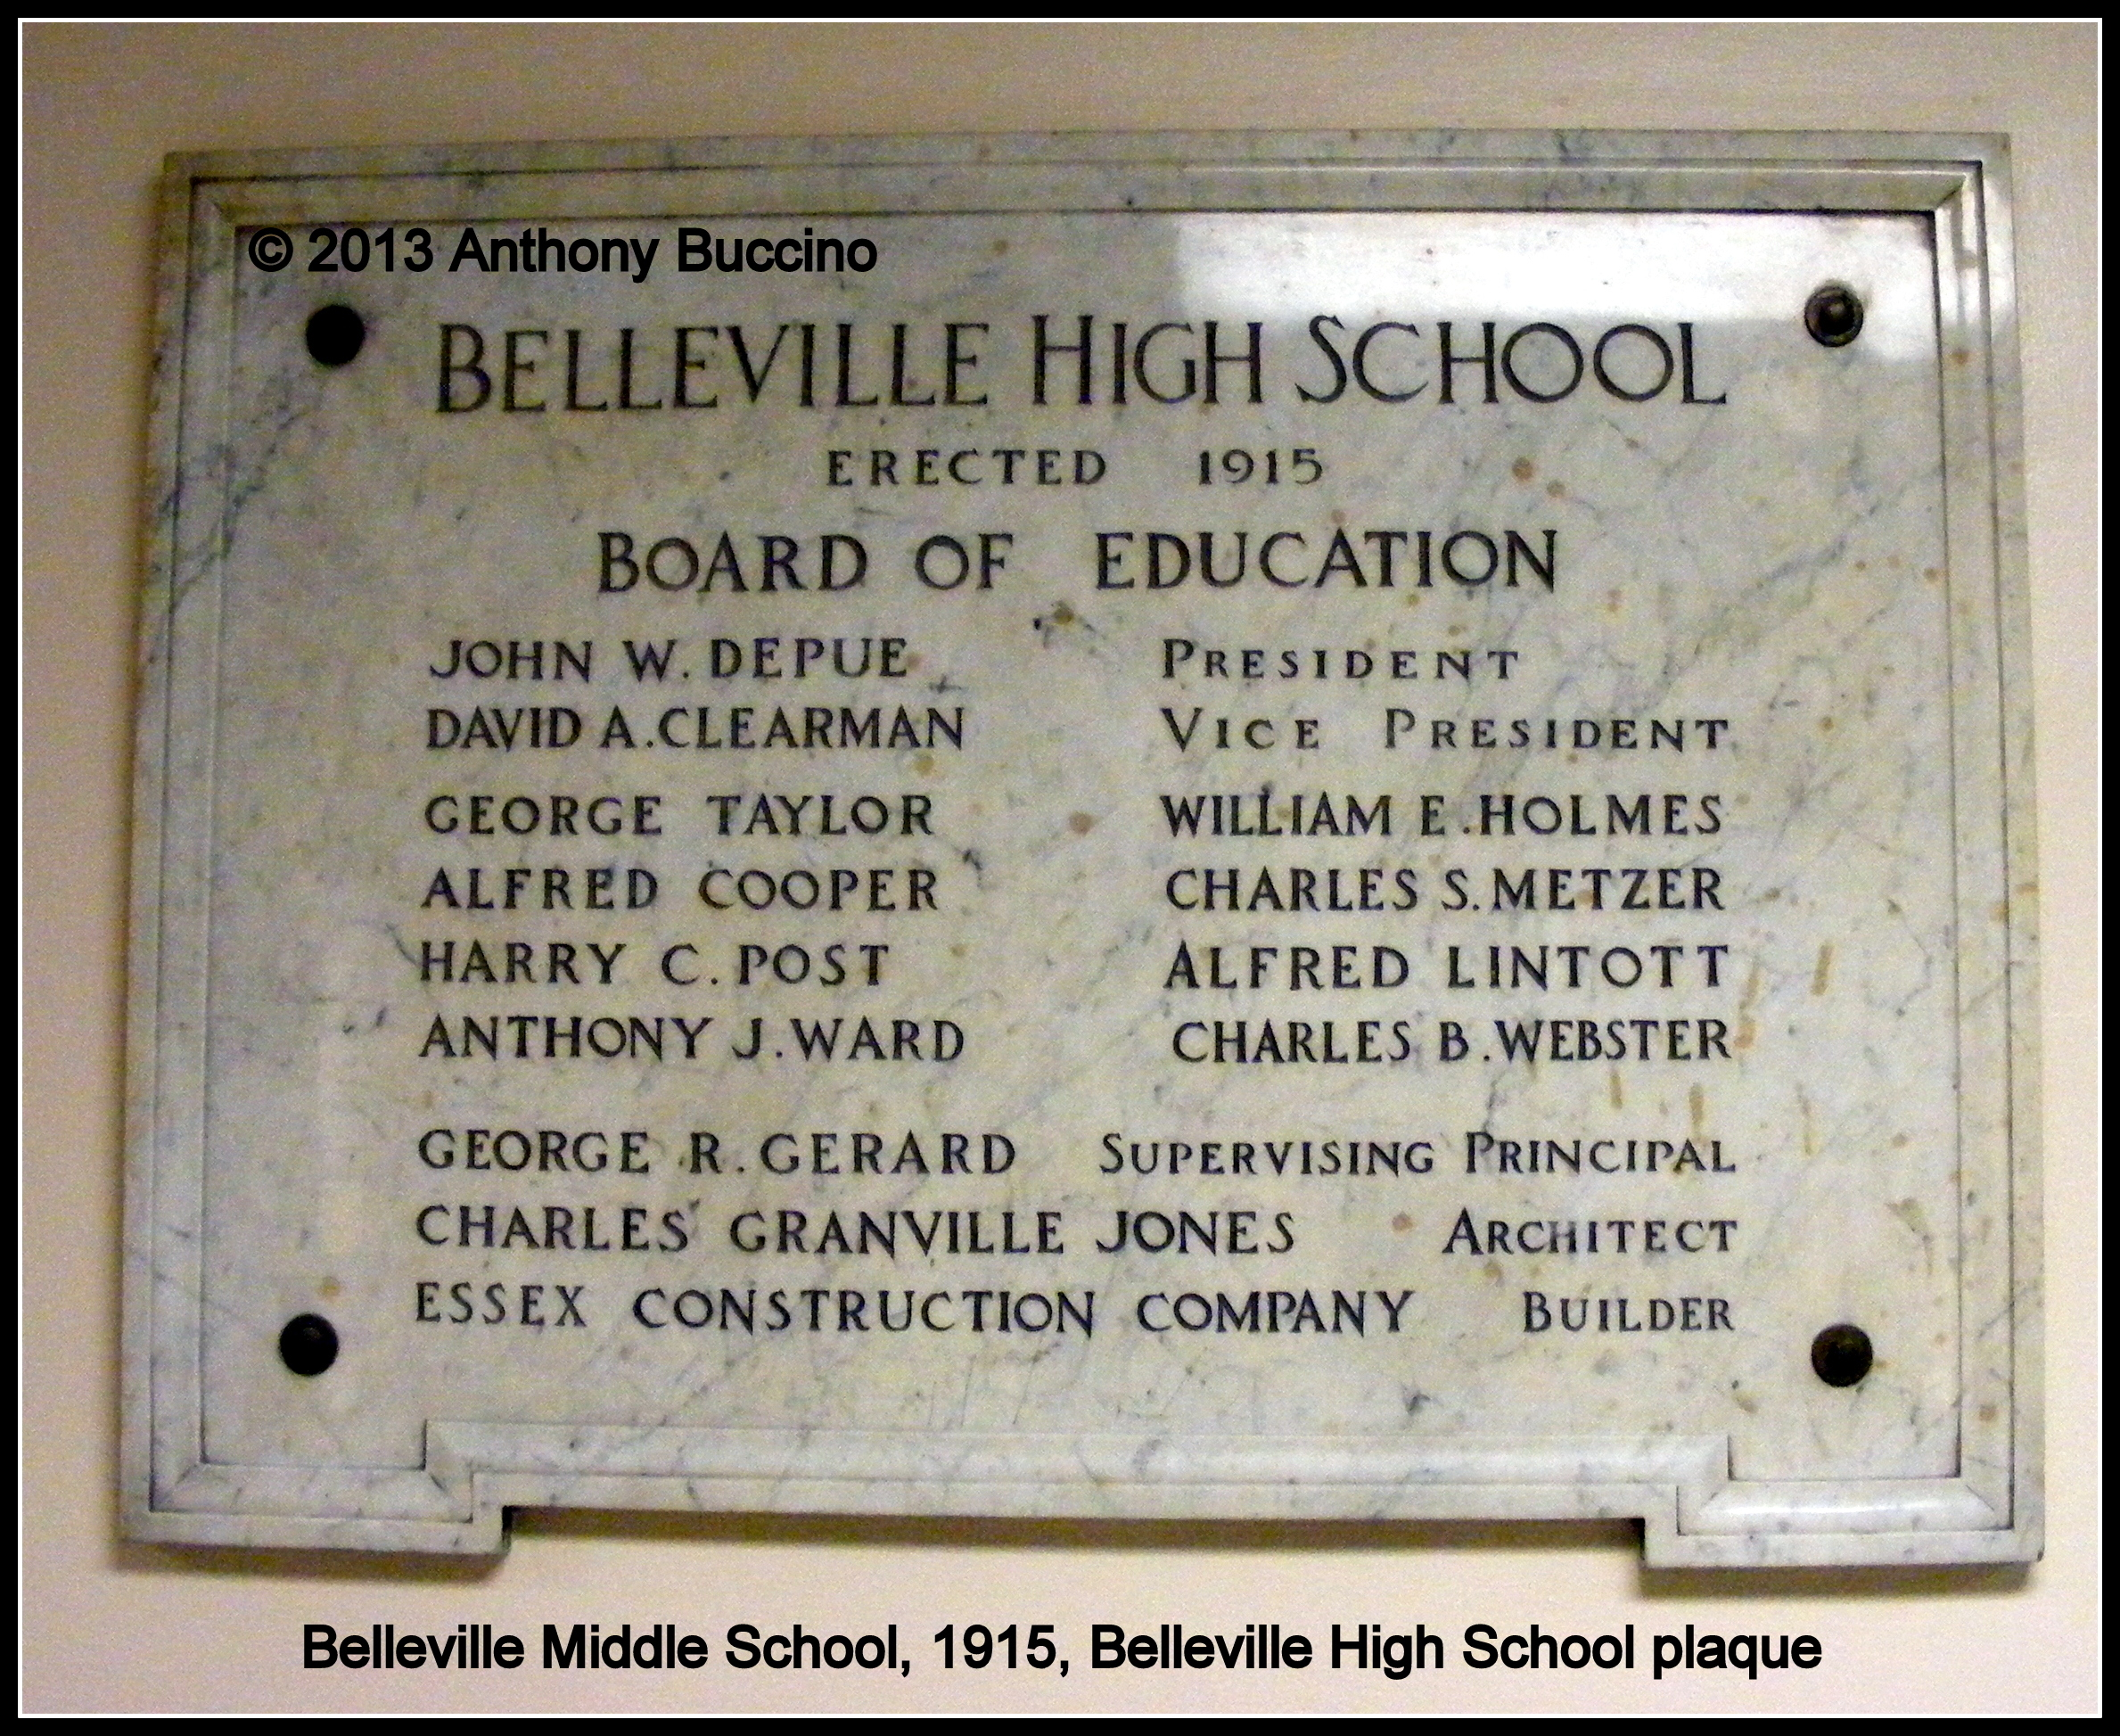 Belleville High School, built 1915, Belleville, NJ-Old Belleville web site